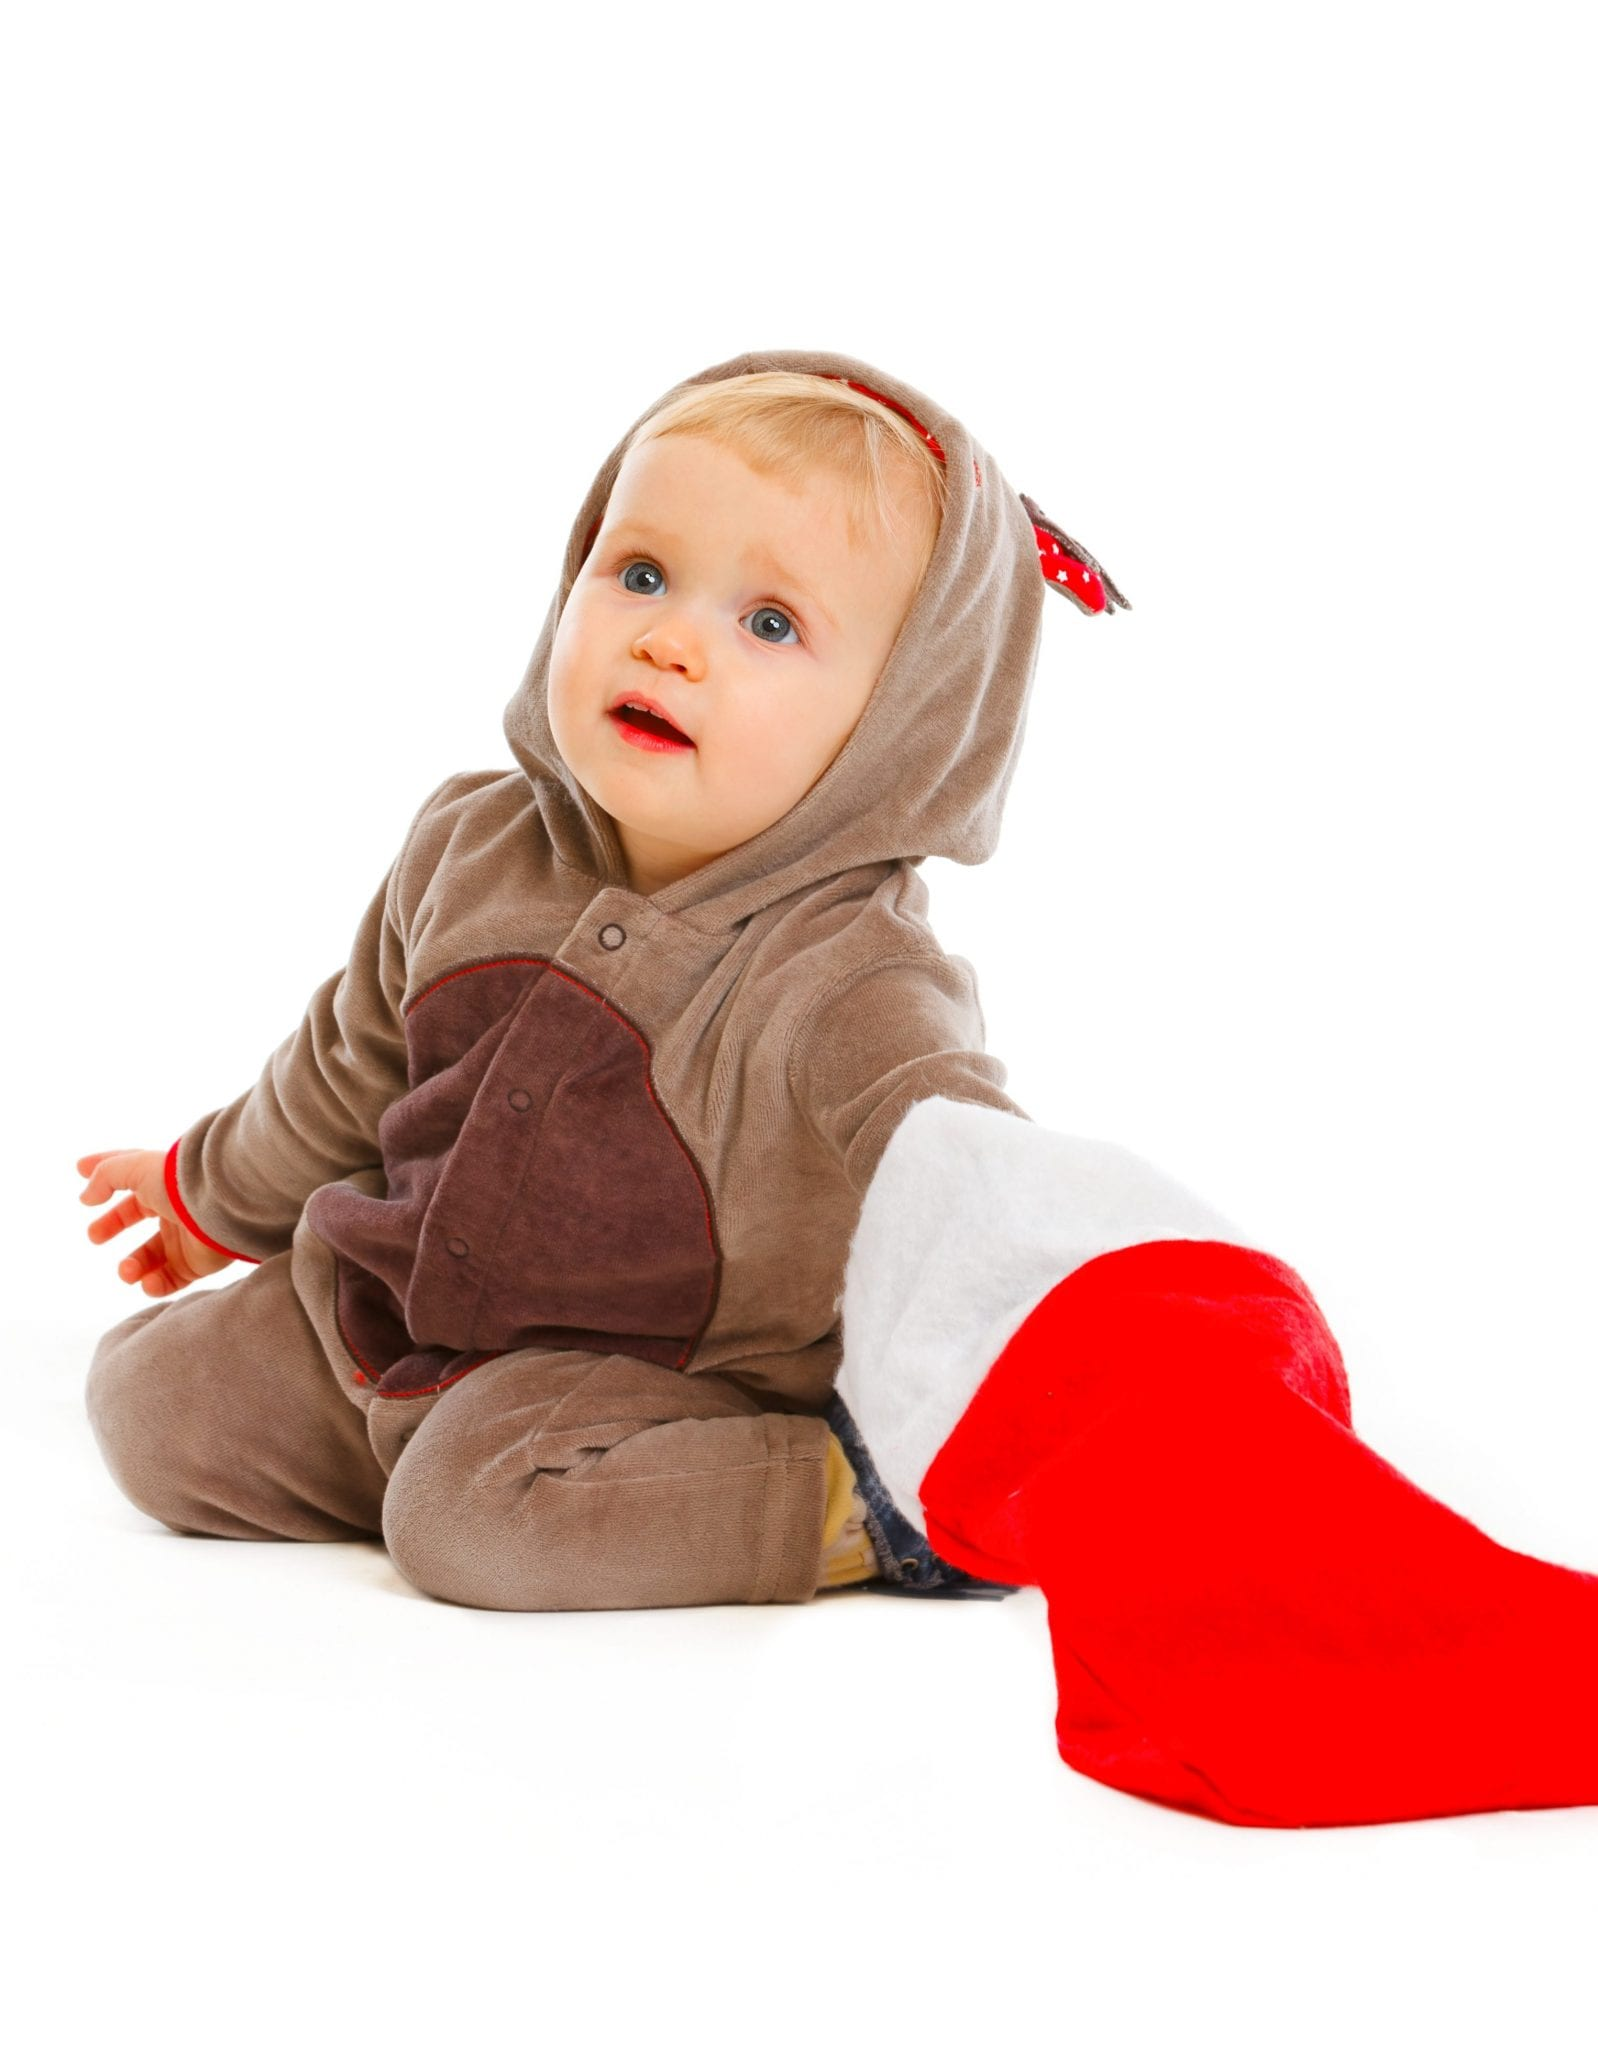 Gifts and Stocking Stuffers for a Baby (0 – 12 months)